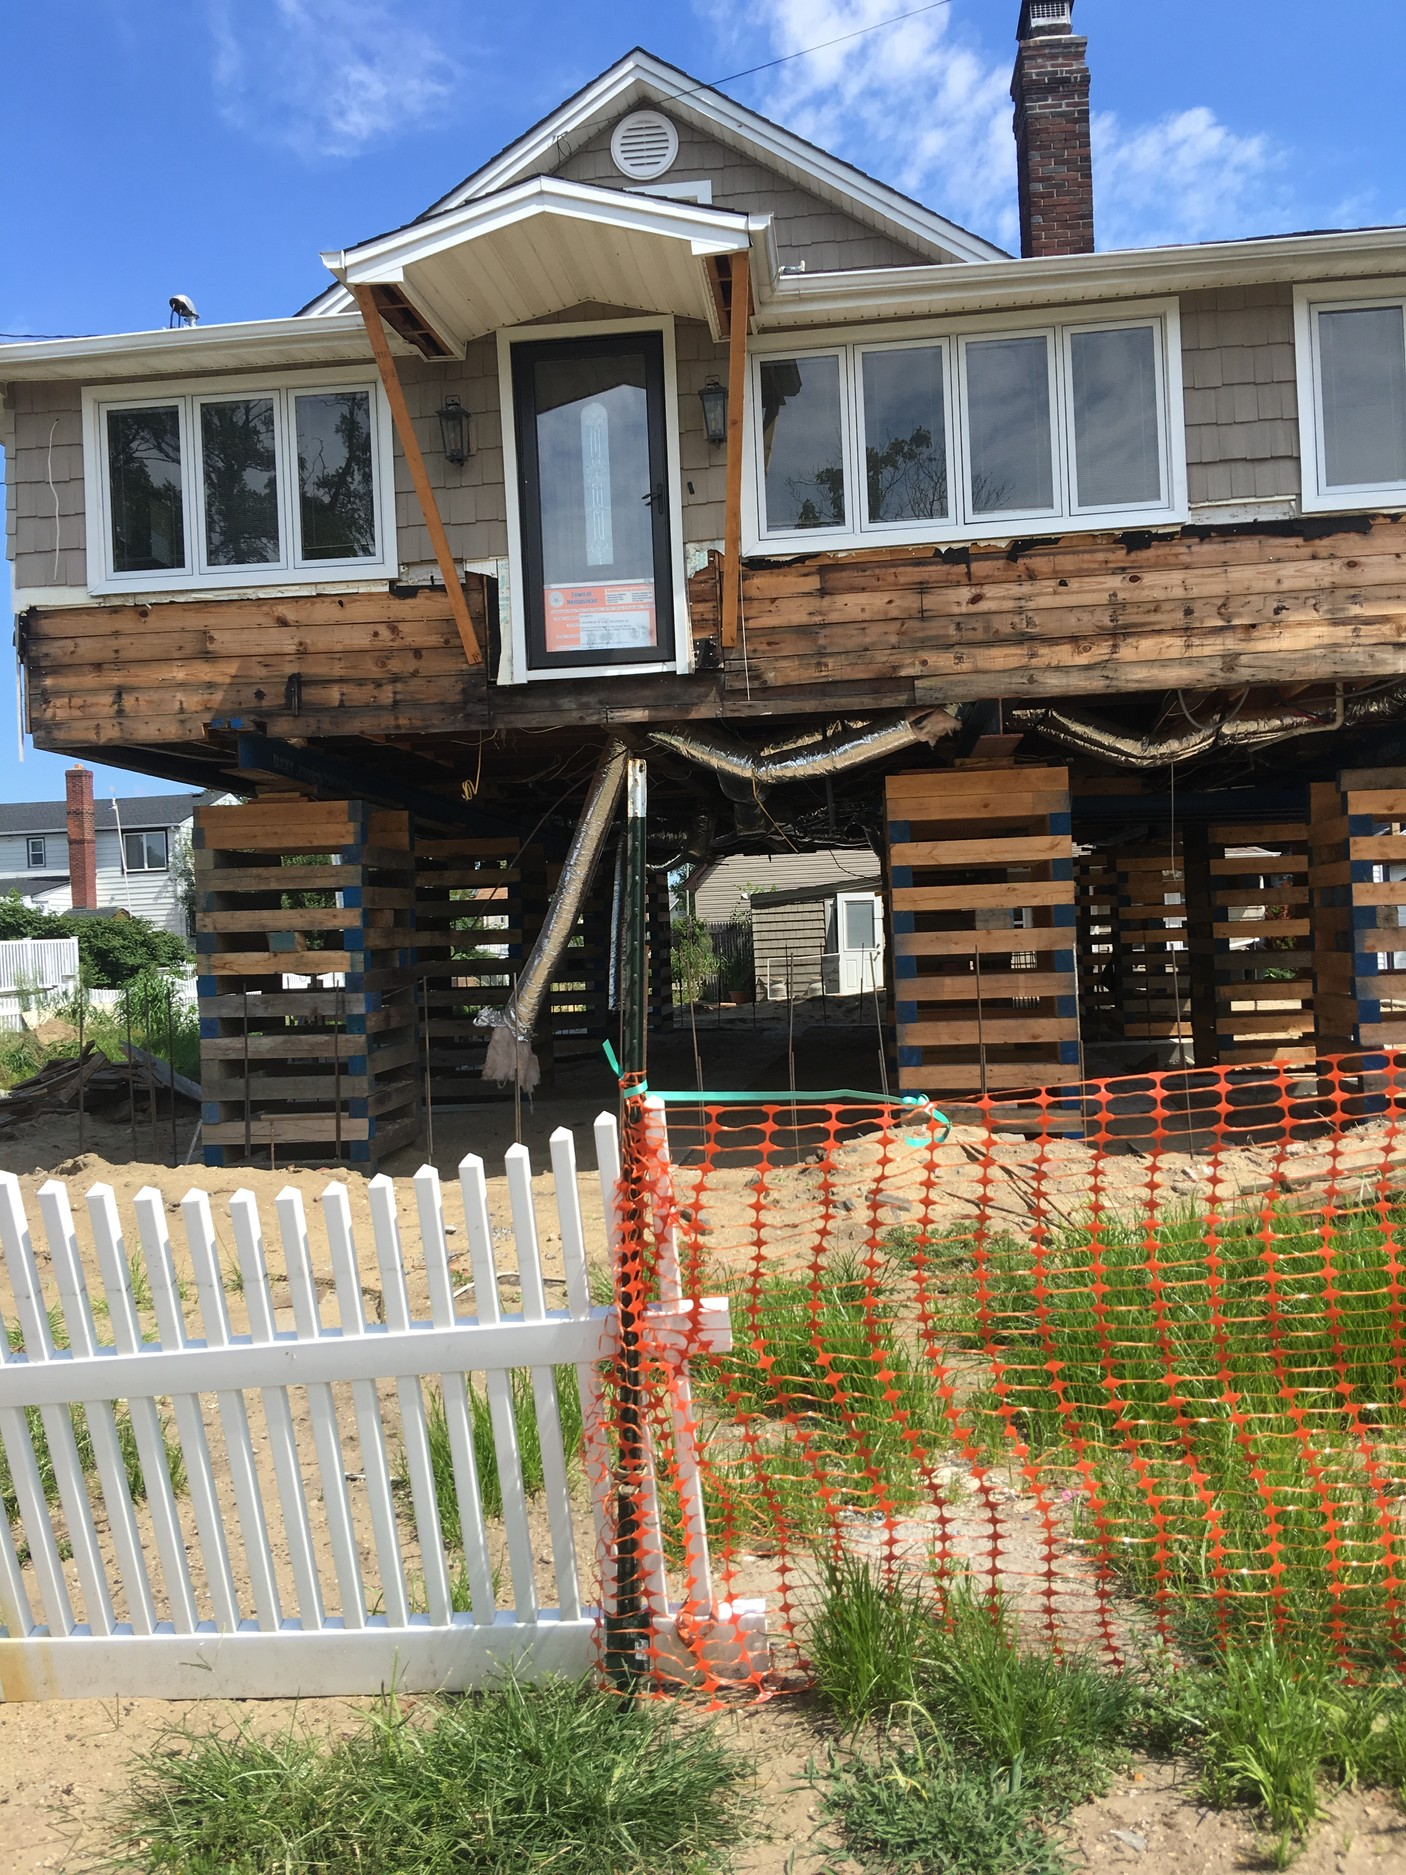 Donna Prisciandaro said that her Bay Park home was suspended in the air on stilts for 11 months after two contractors took money from her to raise it and did not finish the job.